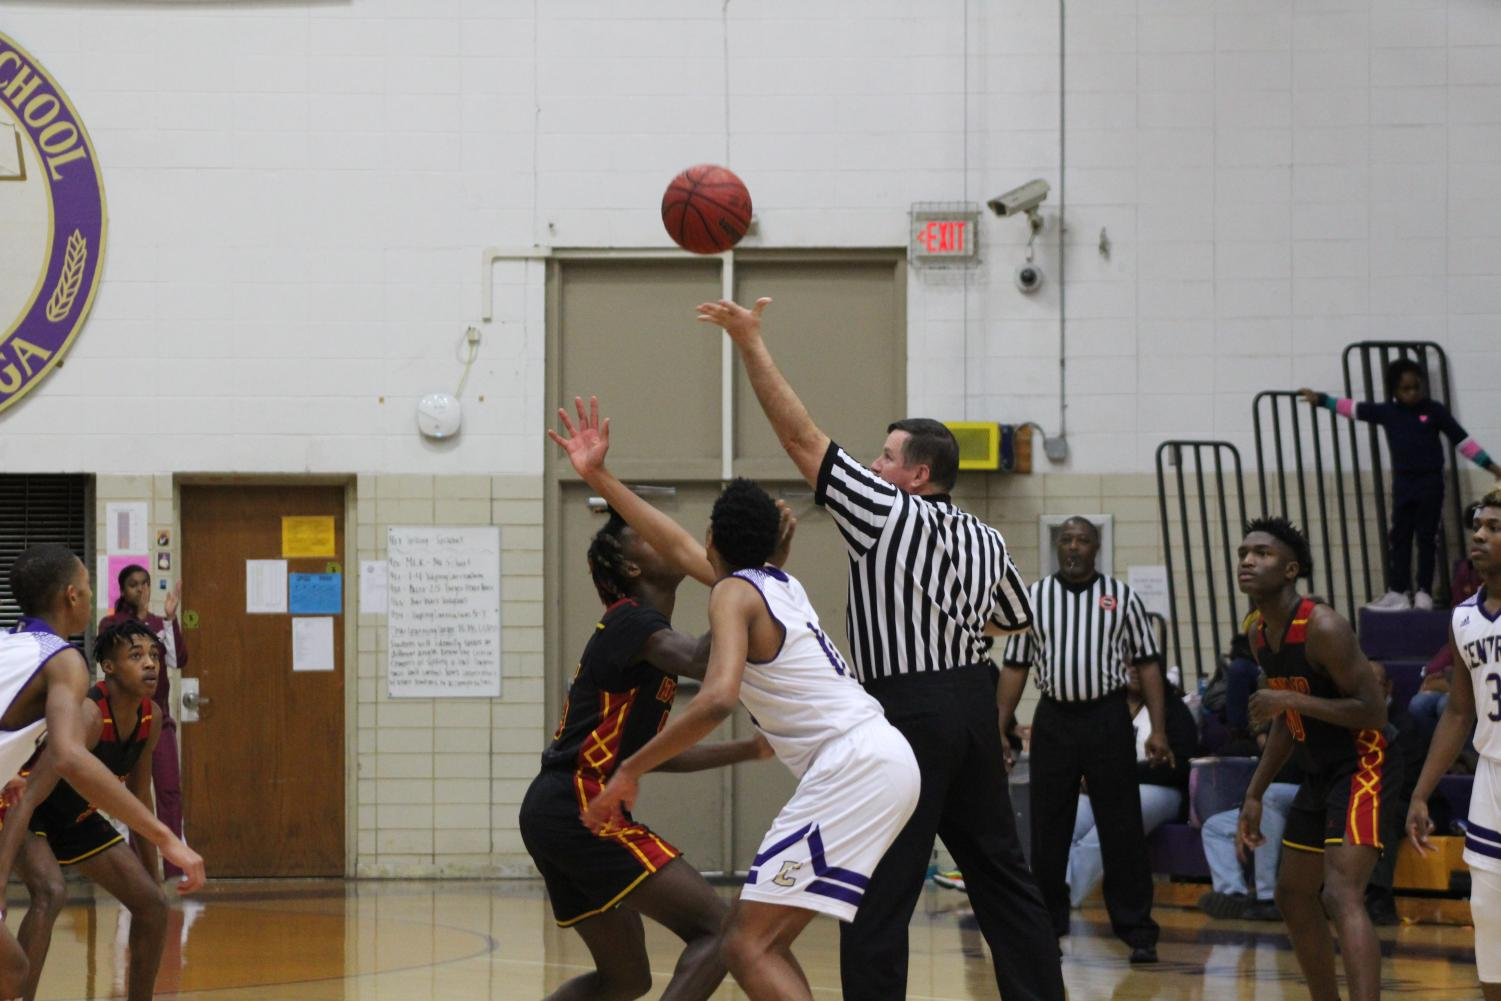 CENTRAL HIGH'S BOYS BASKETBALL IMPROVES AS THE 2019-2020 SEASON PROGRESSES -- Senior Alfonso Few lines up for a jump ball.